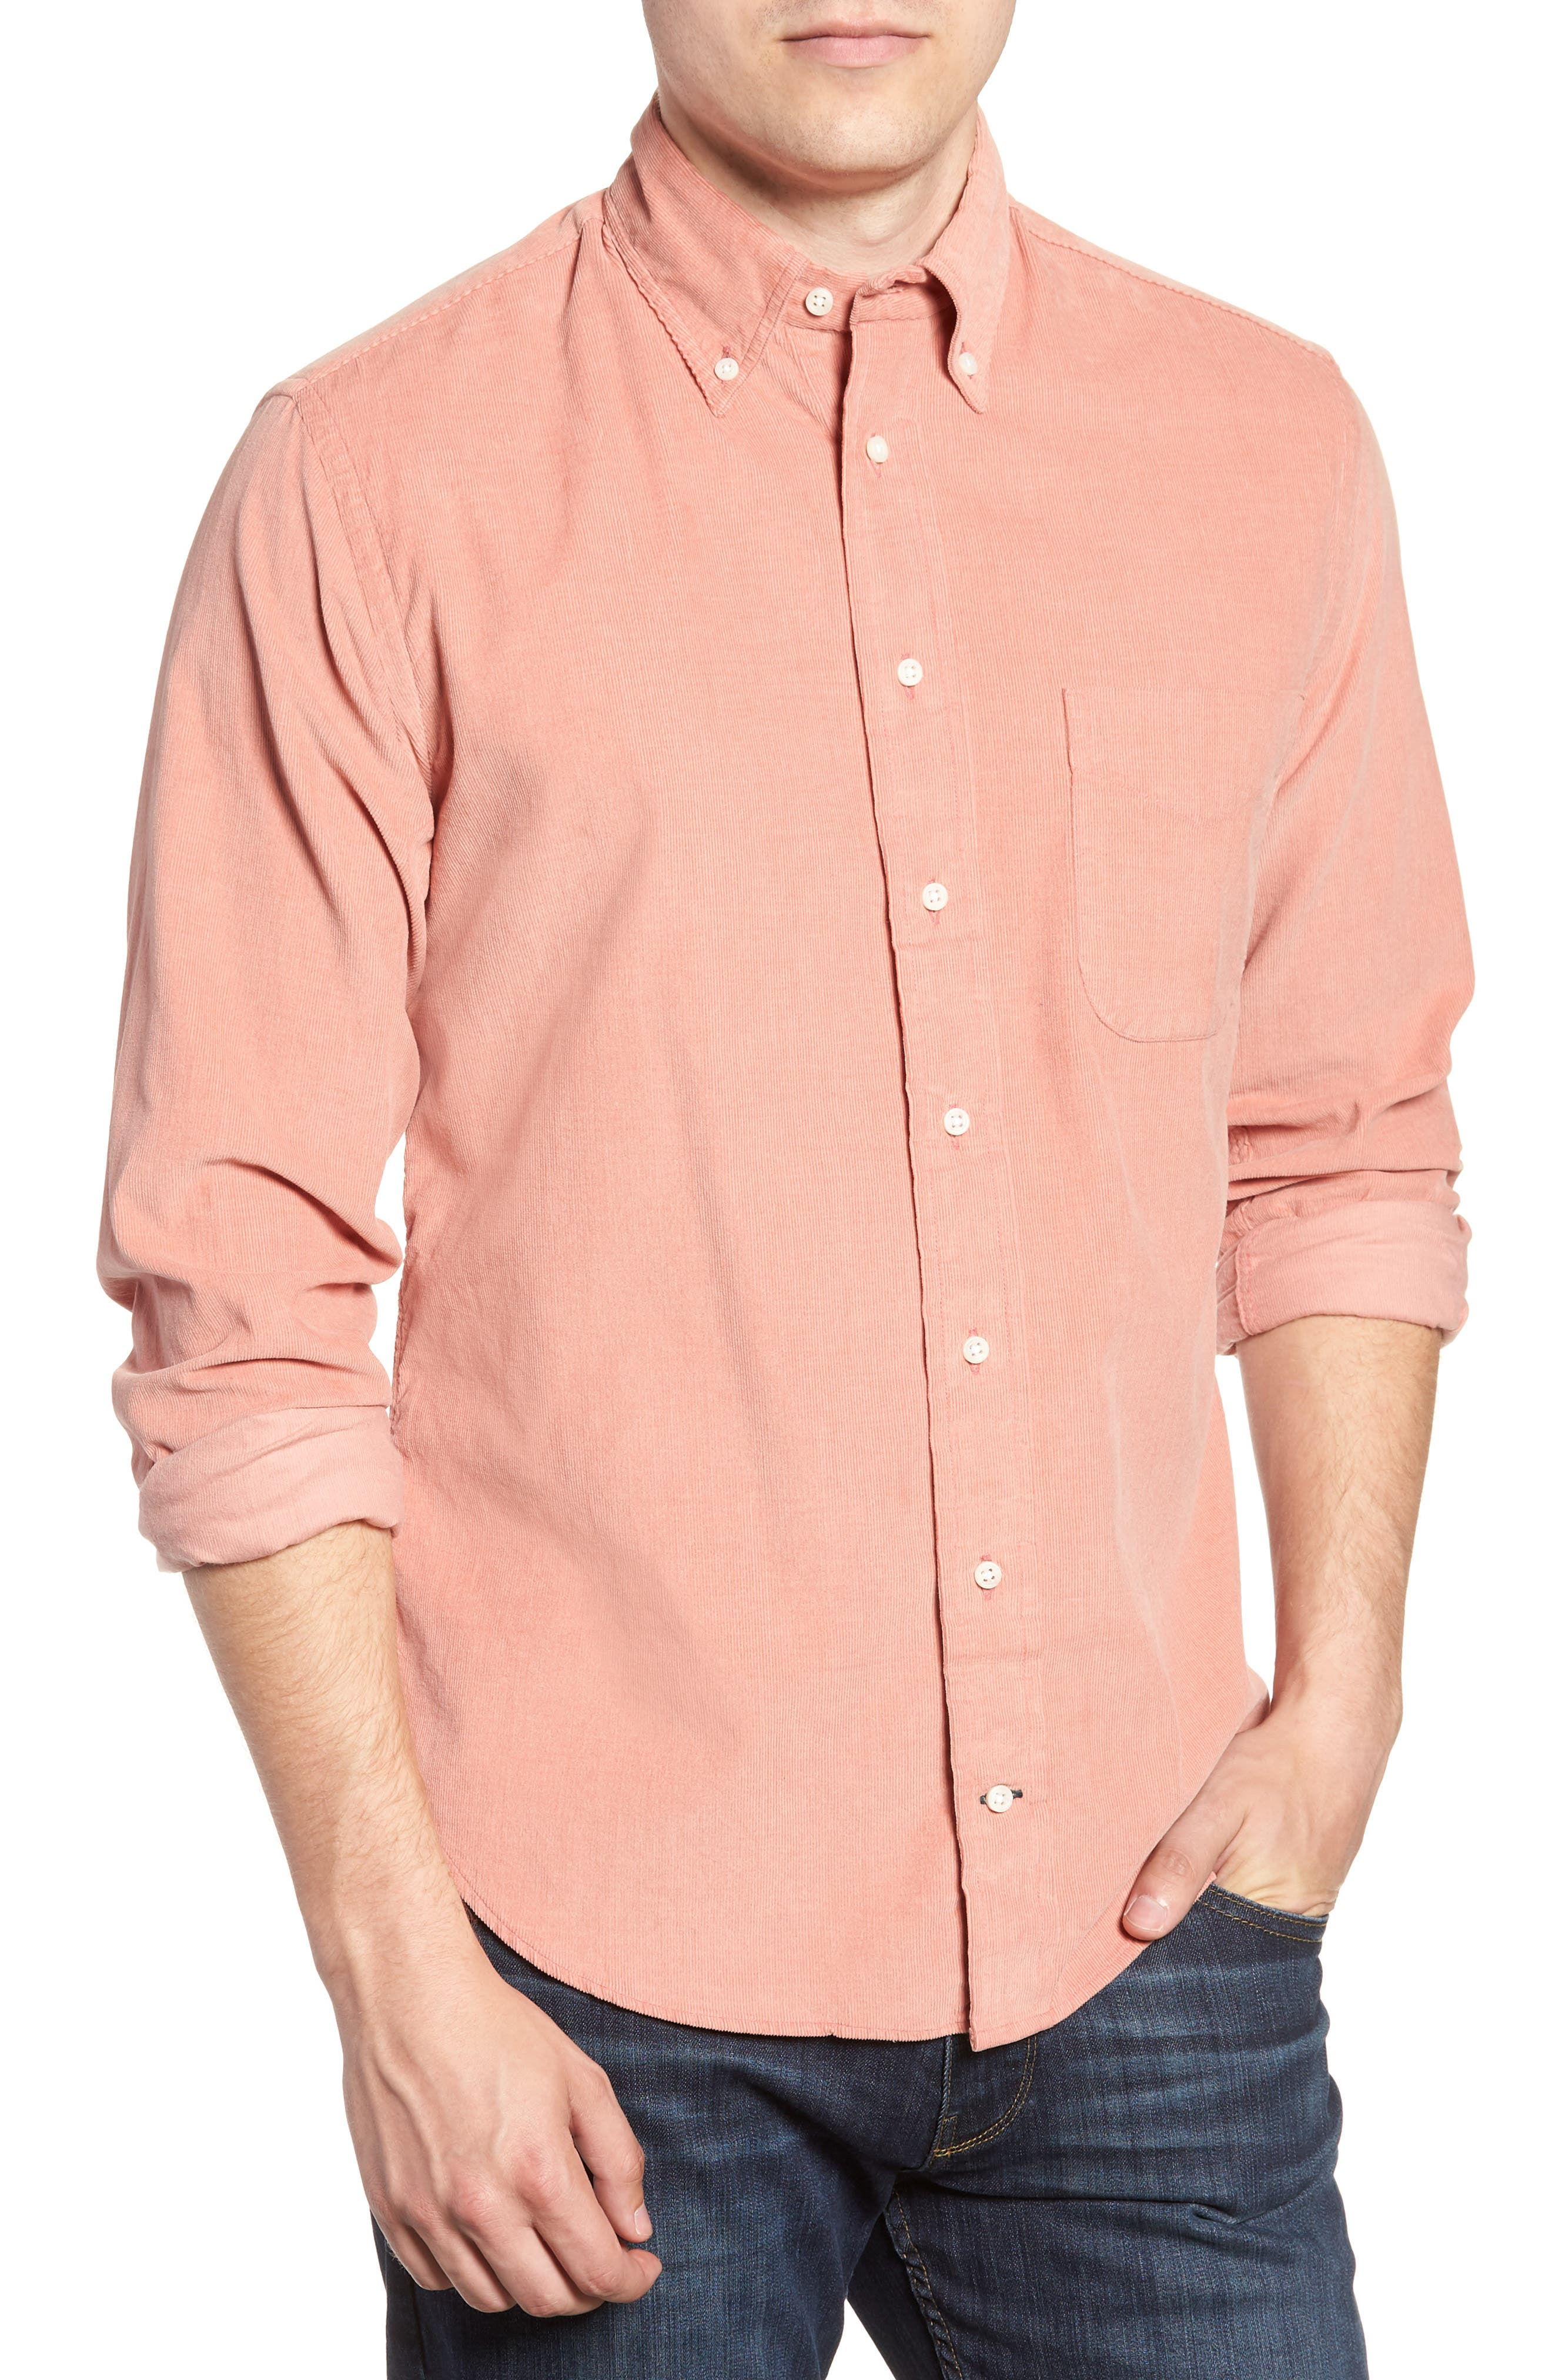 Regular Fit Corduroy Shirt,                         Main,                         color, PINK